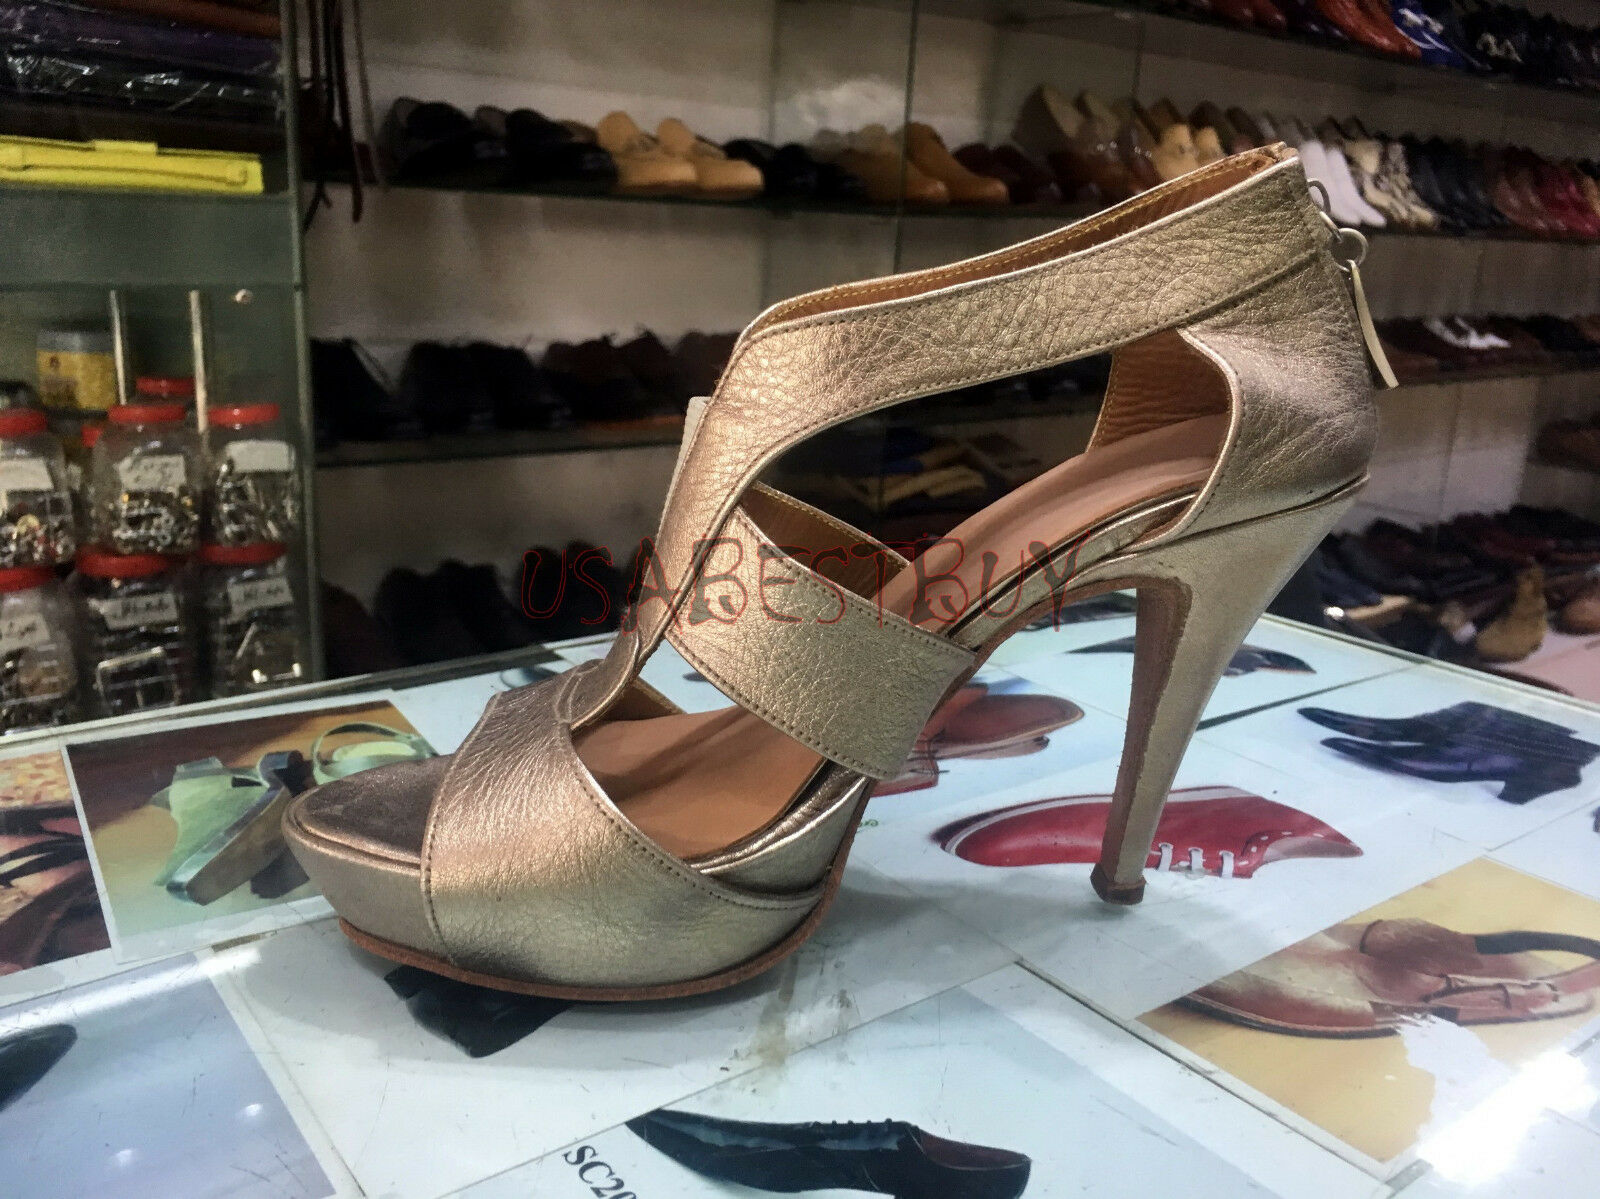 New Handmade donna donna donna Elegant oroen Superb Style Leather Sandal with Leather Sole d1348c